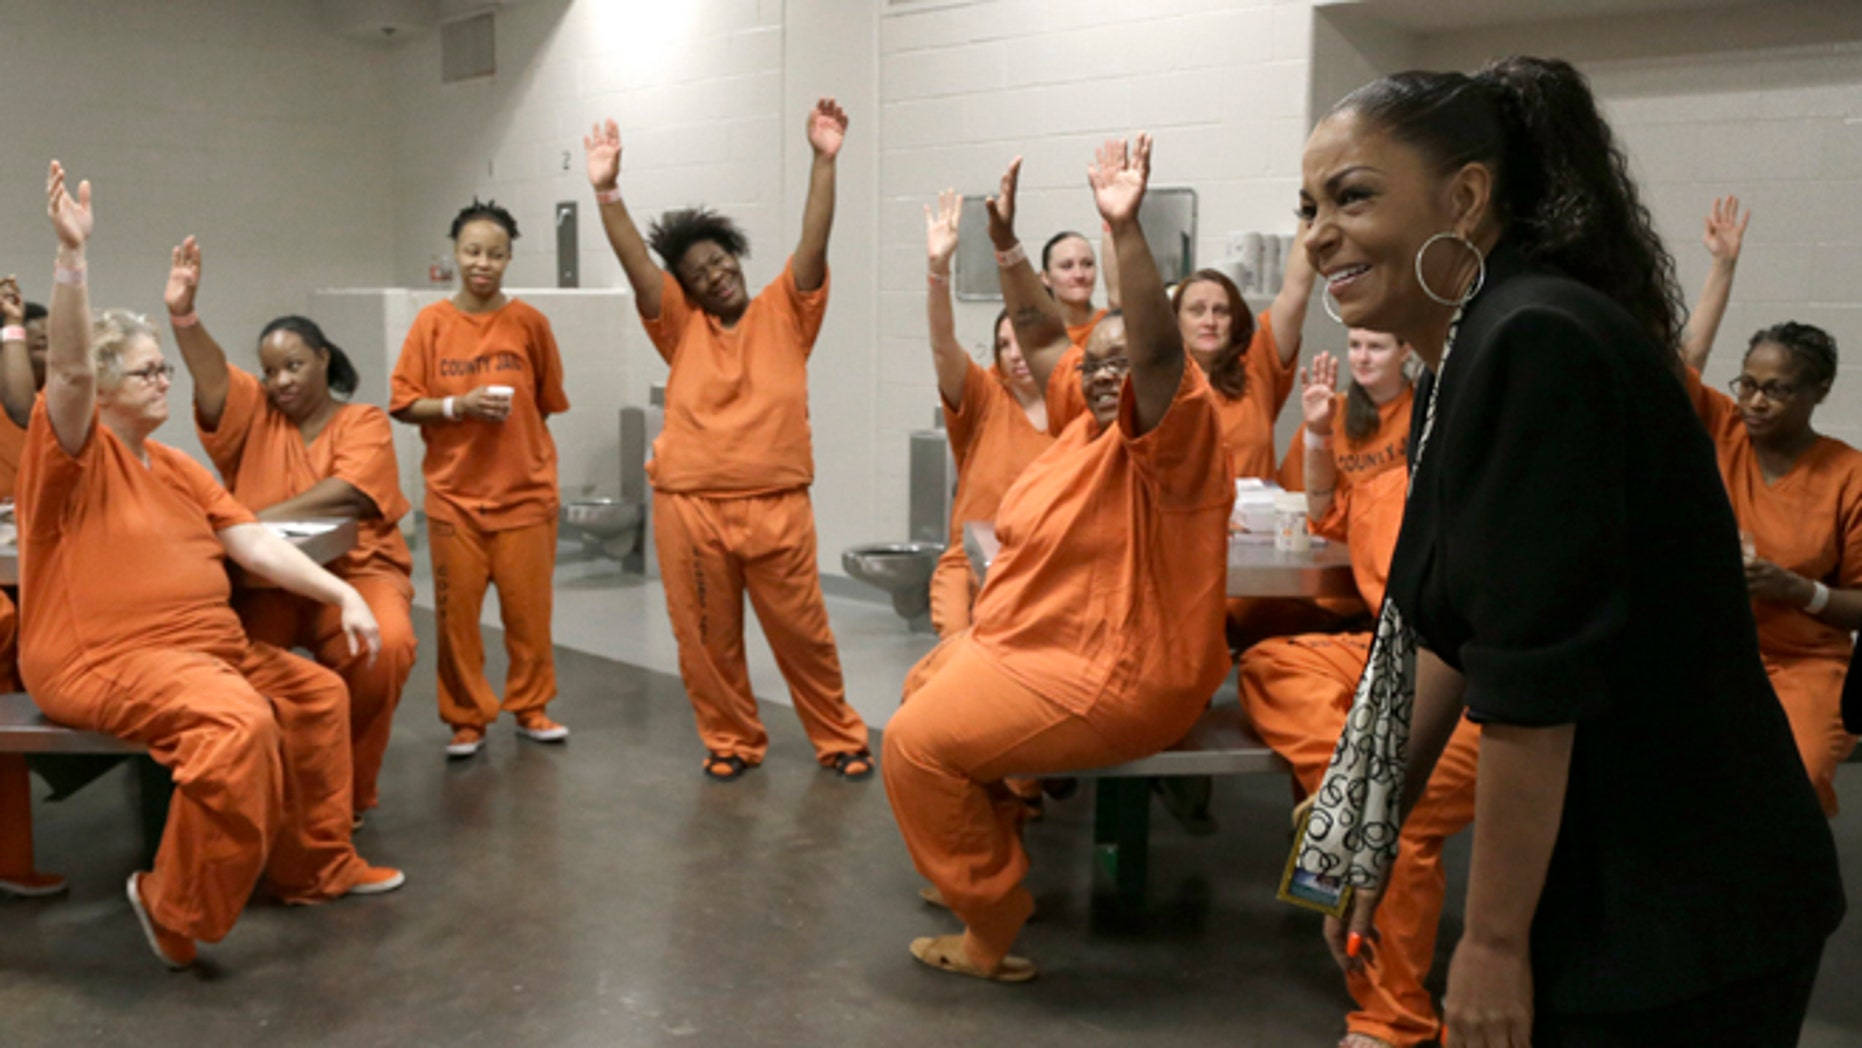 June 4, 2013: Kathryn Griffin Grinan, left, reacts as Harris County jail inmates sing her praises during a group session in Houston. Griffin started and runs prostitution rehabilitation program We've Been There Done That. (AP)